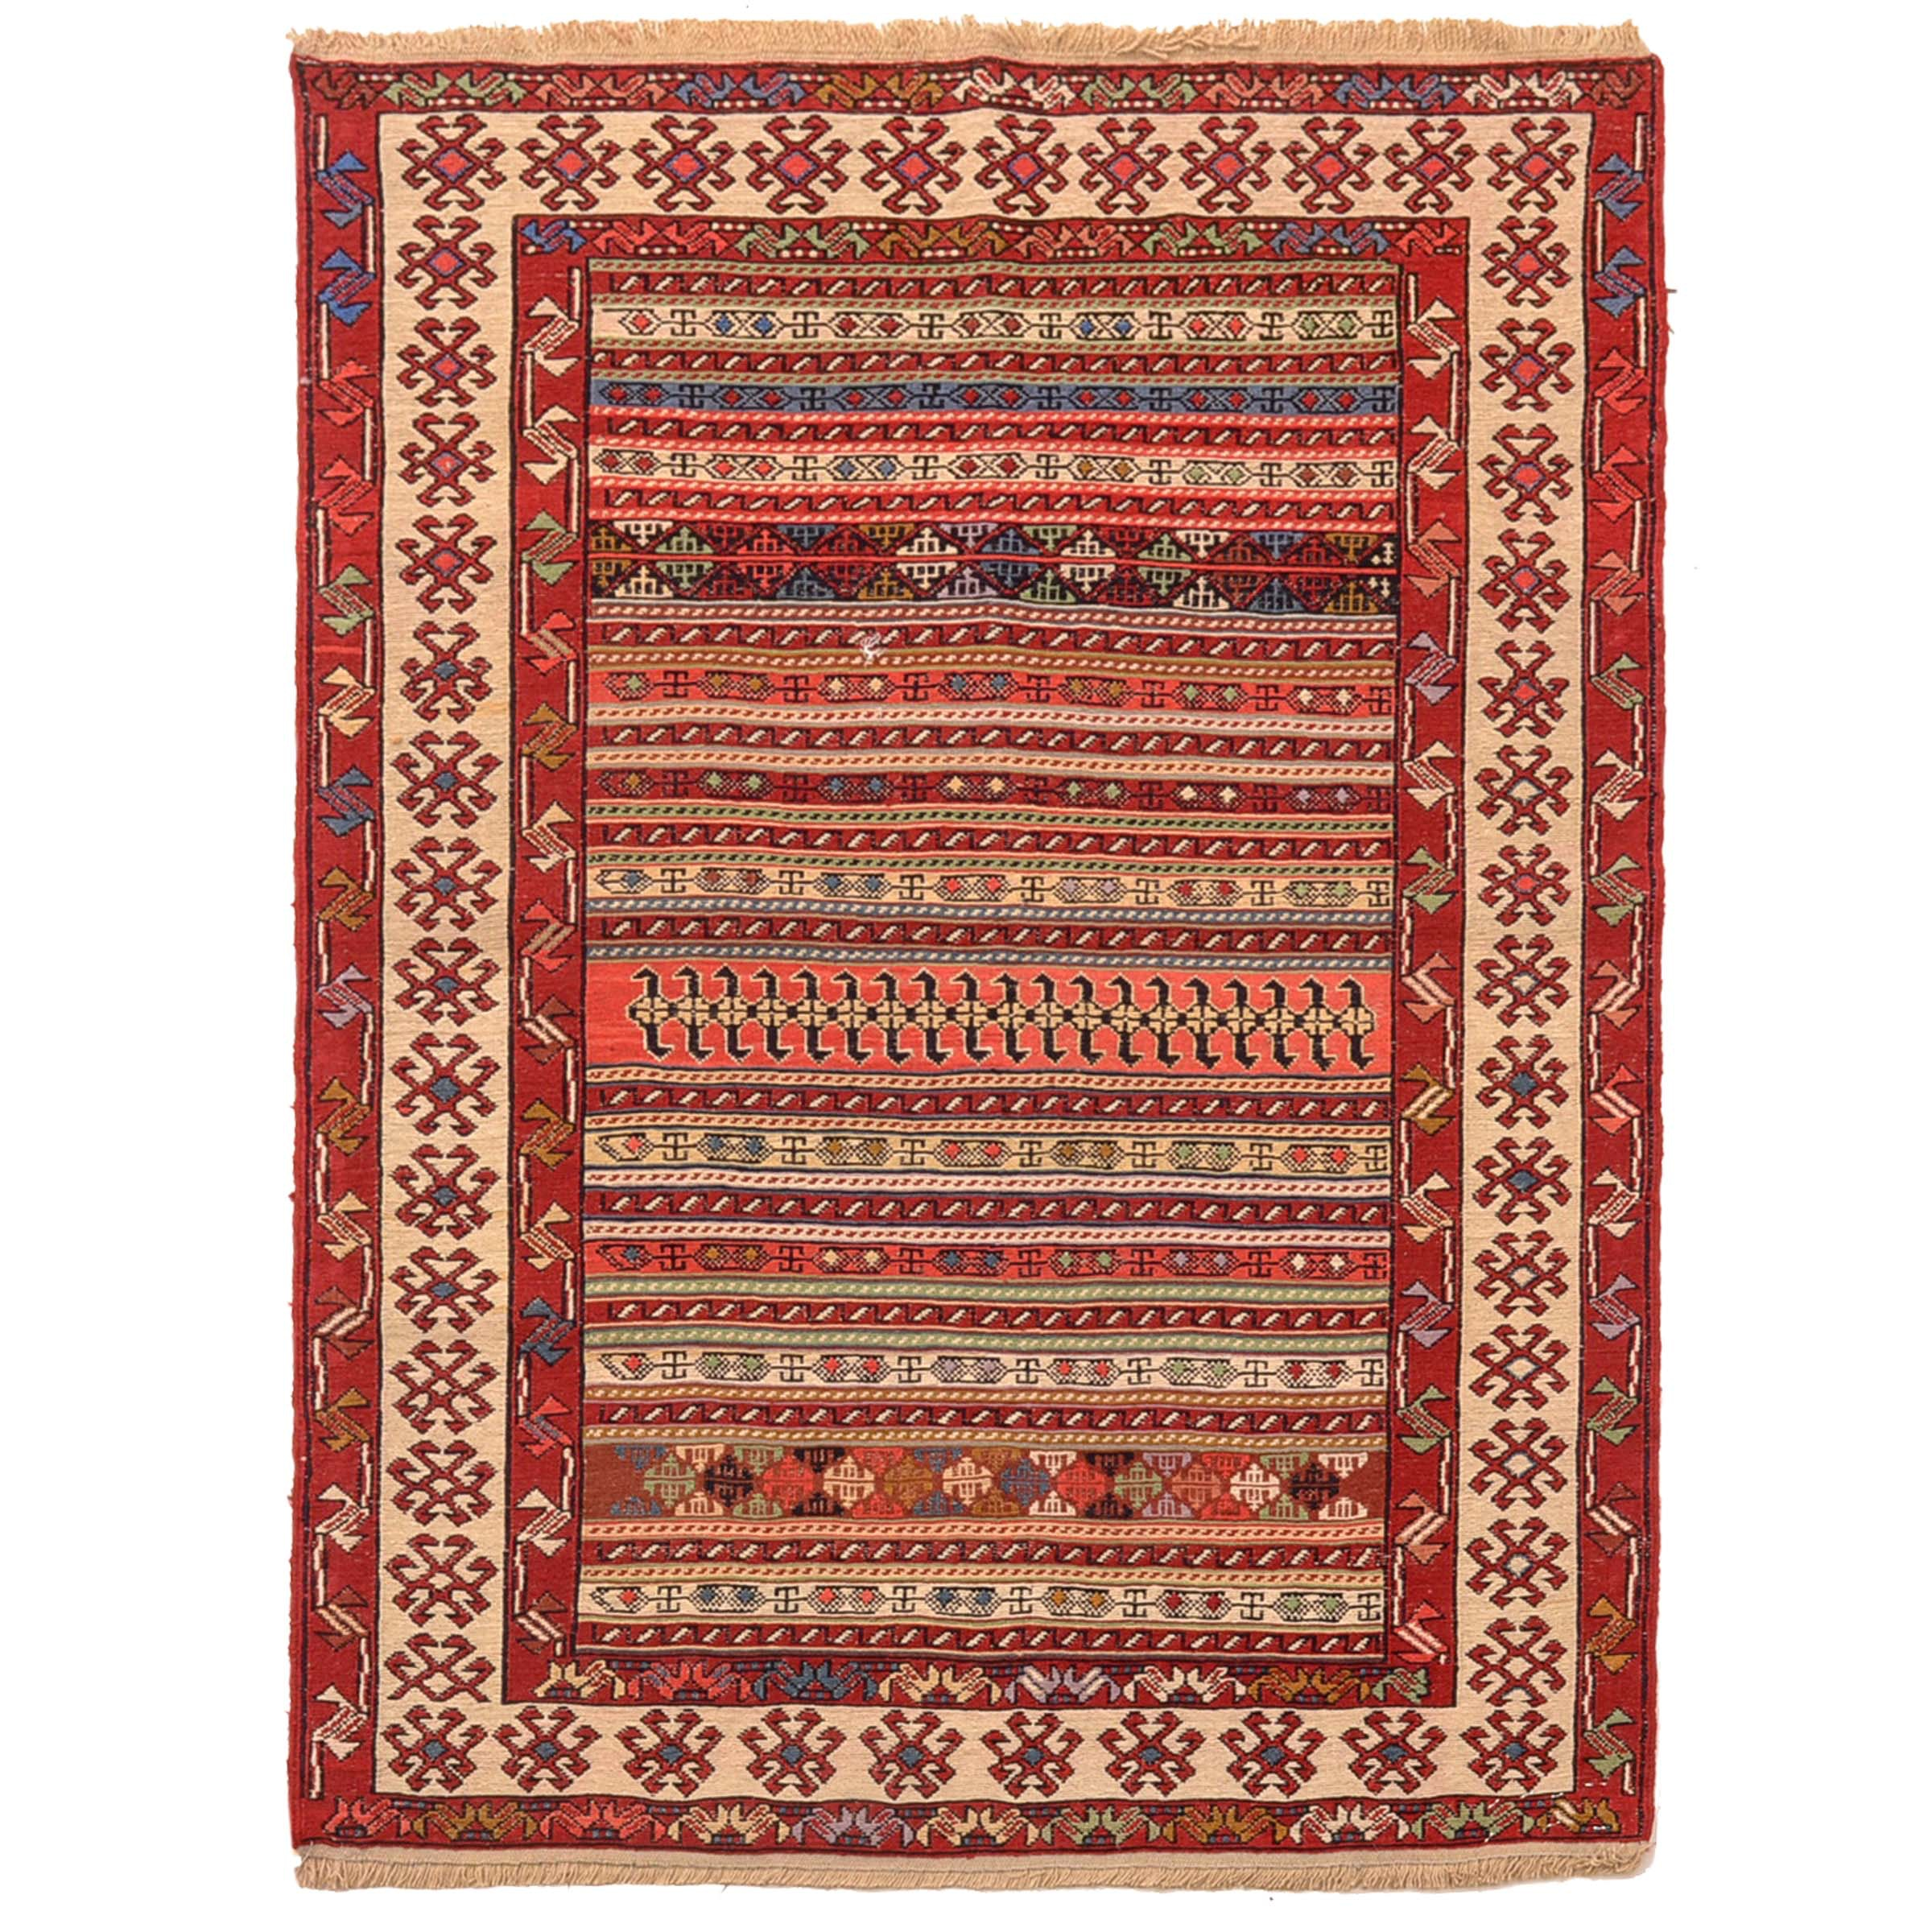 Handwoven Turkish Rahrah Soumak Area Rug